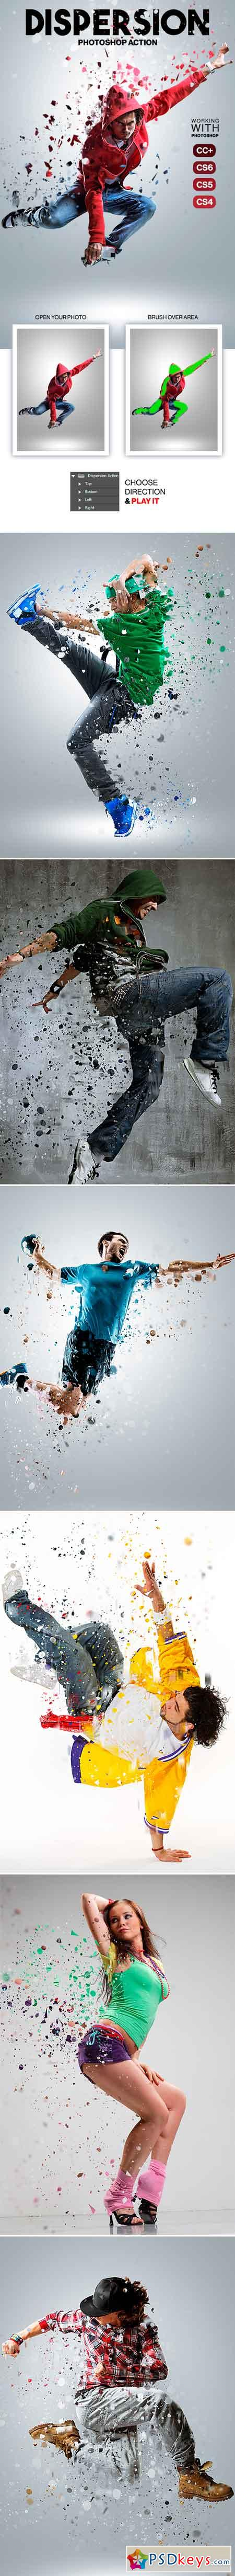 Dispersion Photoshop Action 19425108